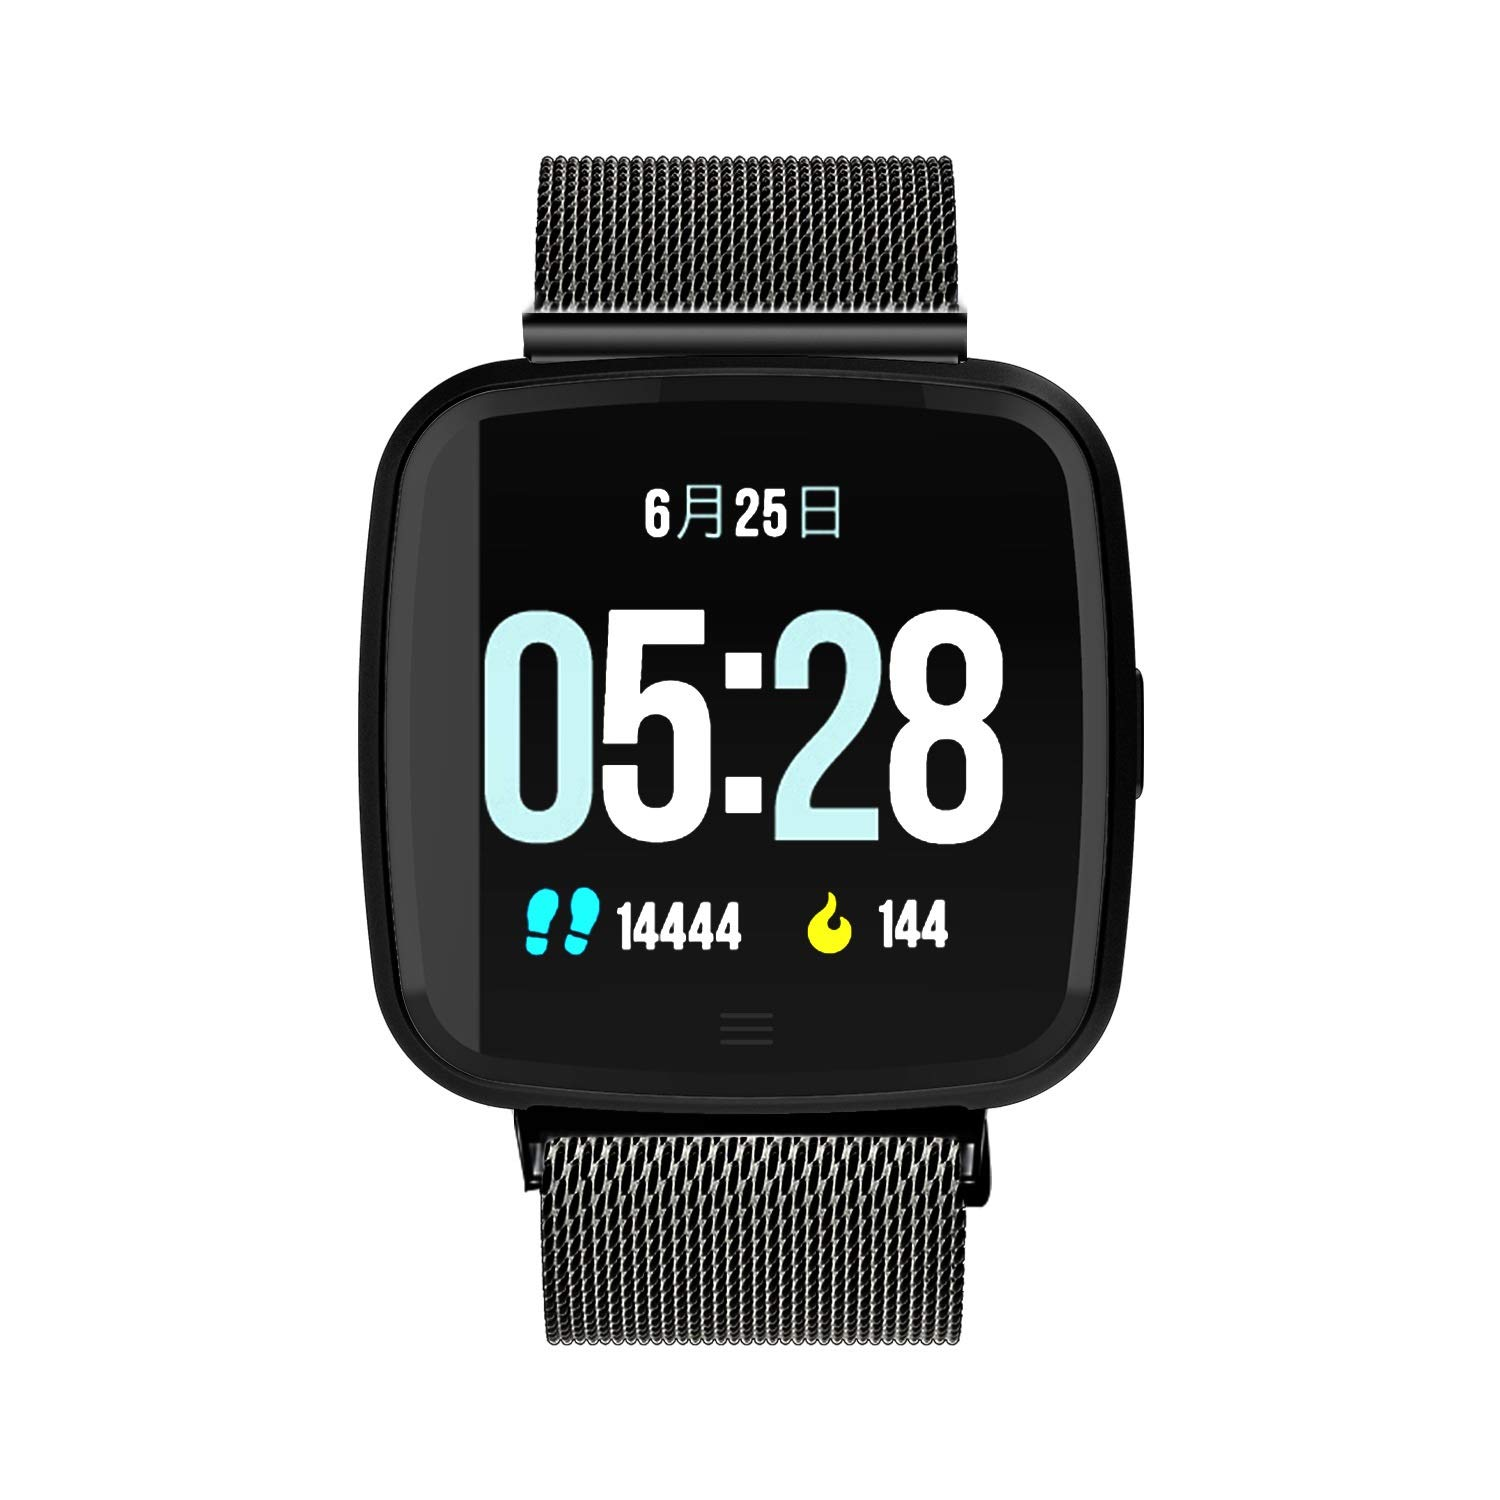 LiChenYao Smart Watch, Heart Rate Detection, Call Reminder, Bluetooth Watch, Message Push, Outdoor Sports Fitness, Smart Watch (Color : D) by LiChenYao